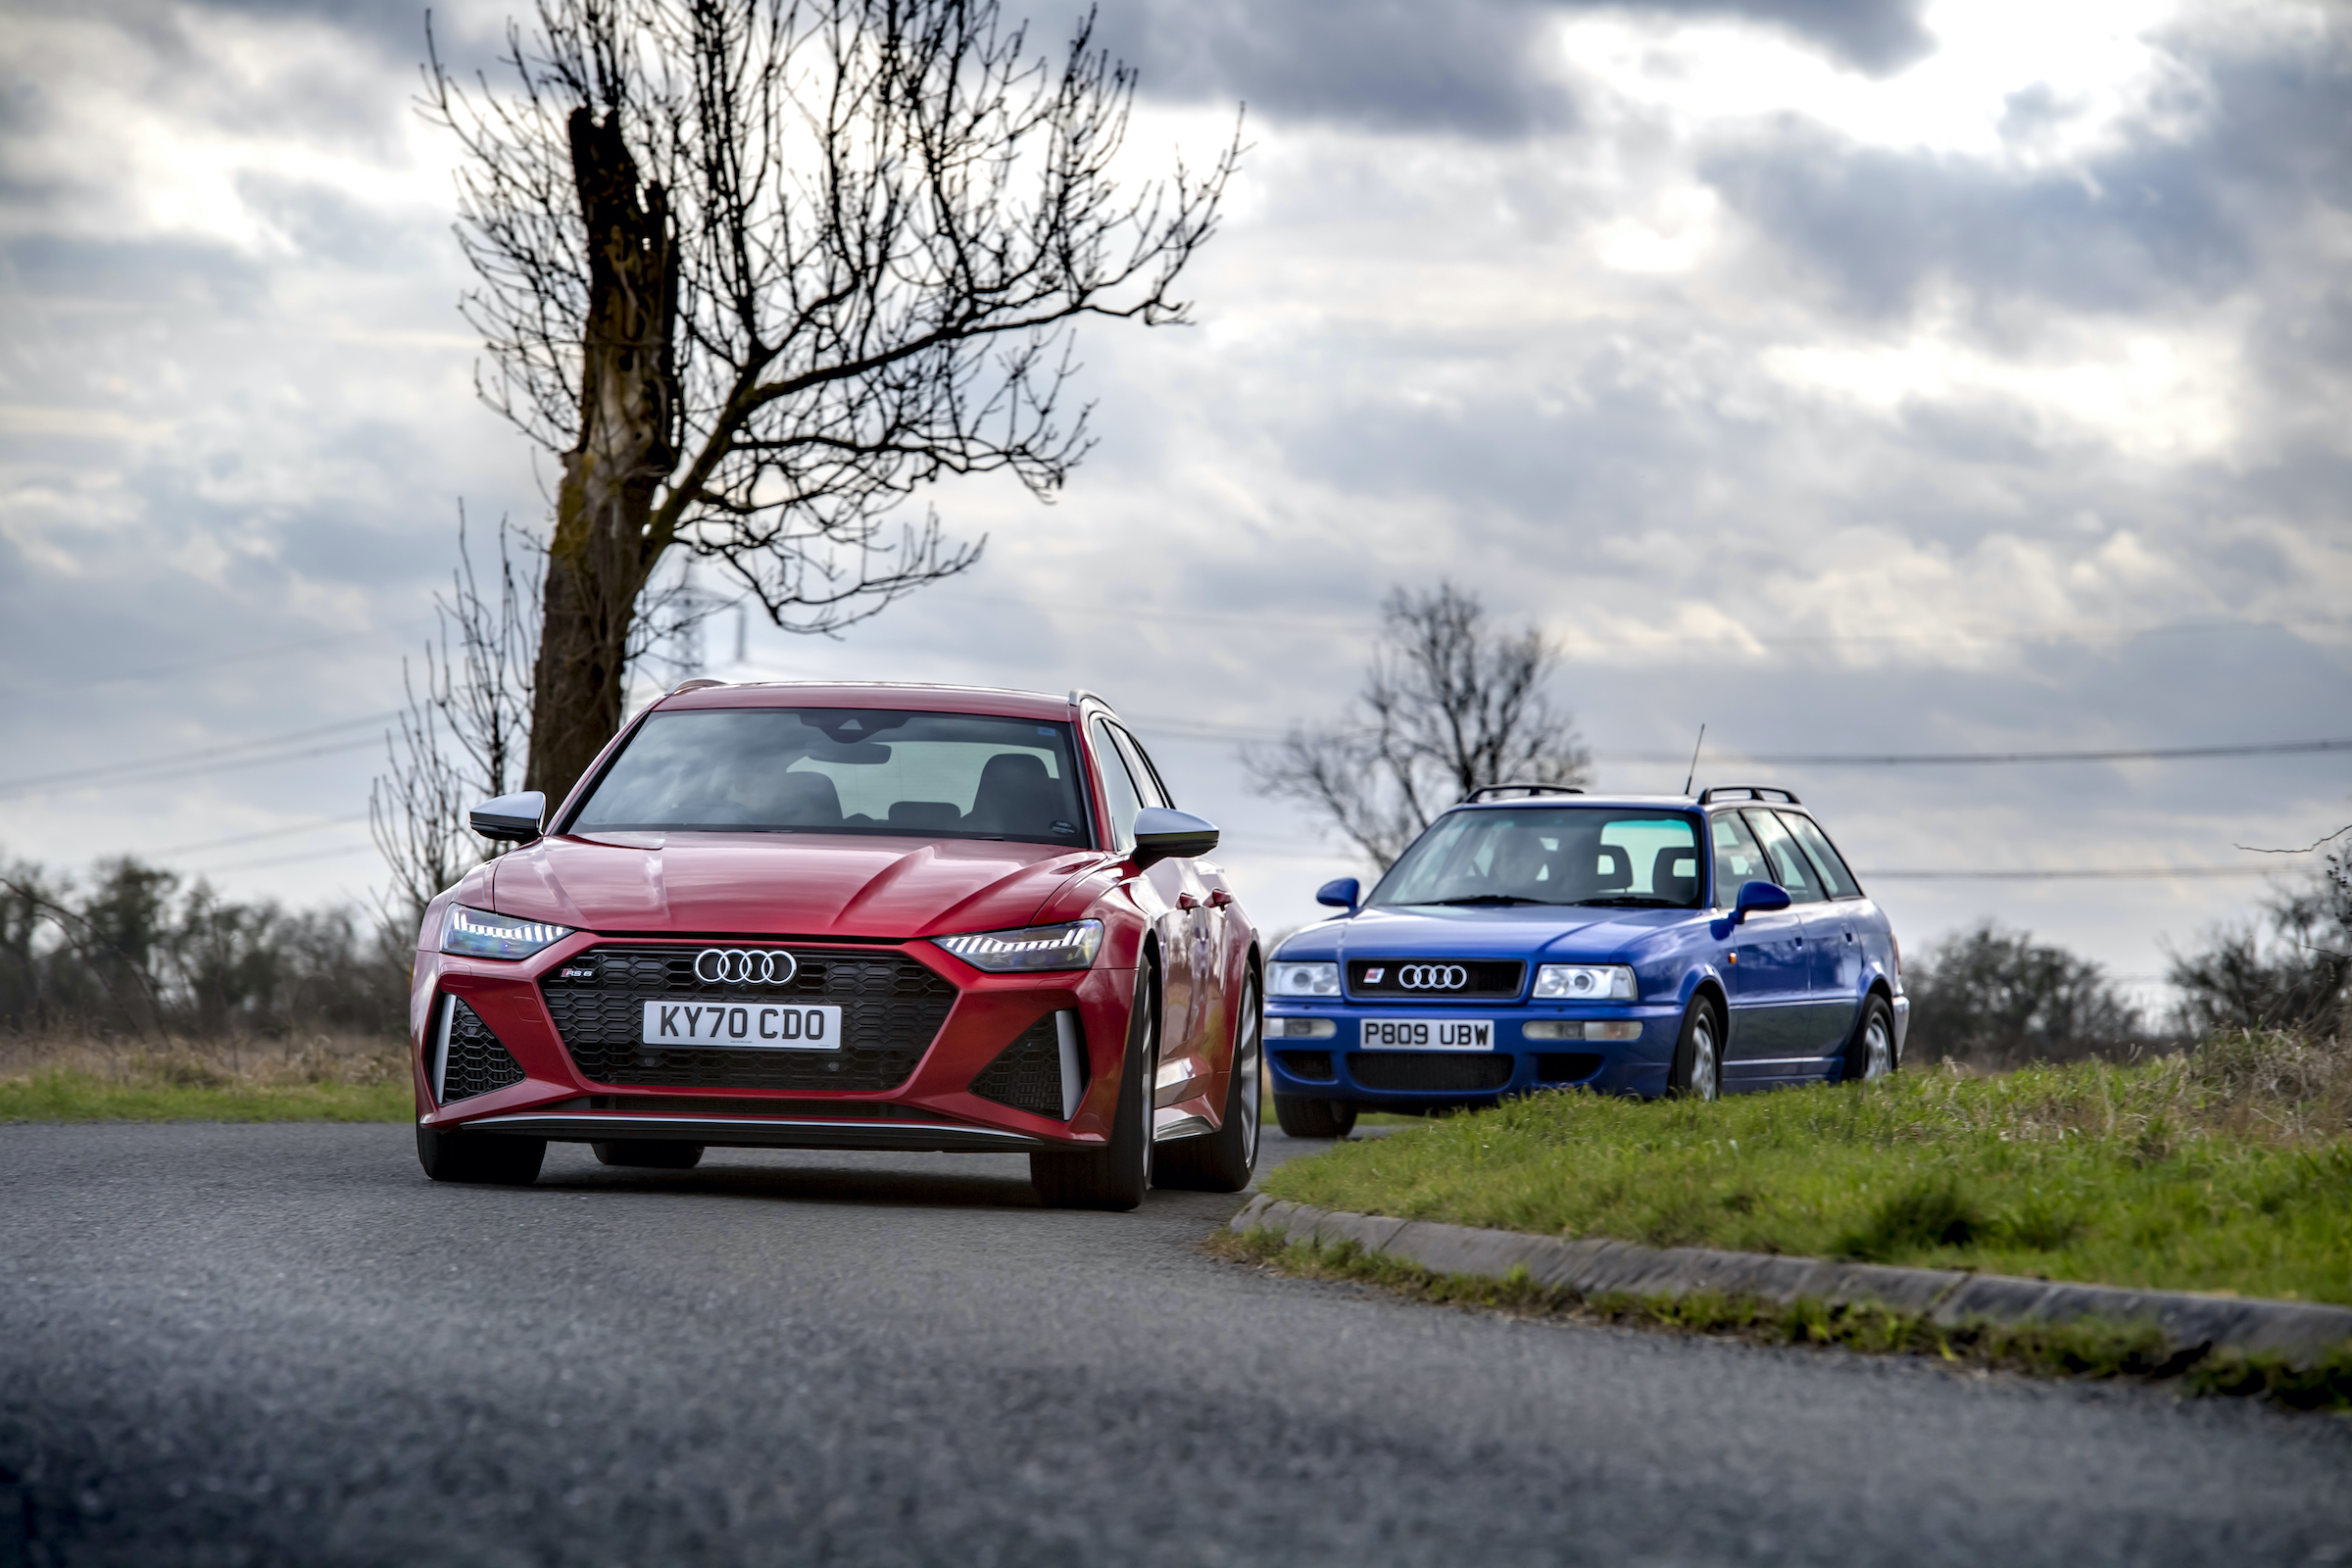 Audi RS6 leading RS2 cornering driving action